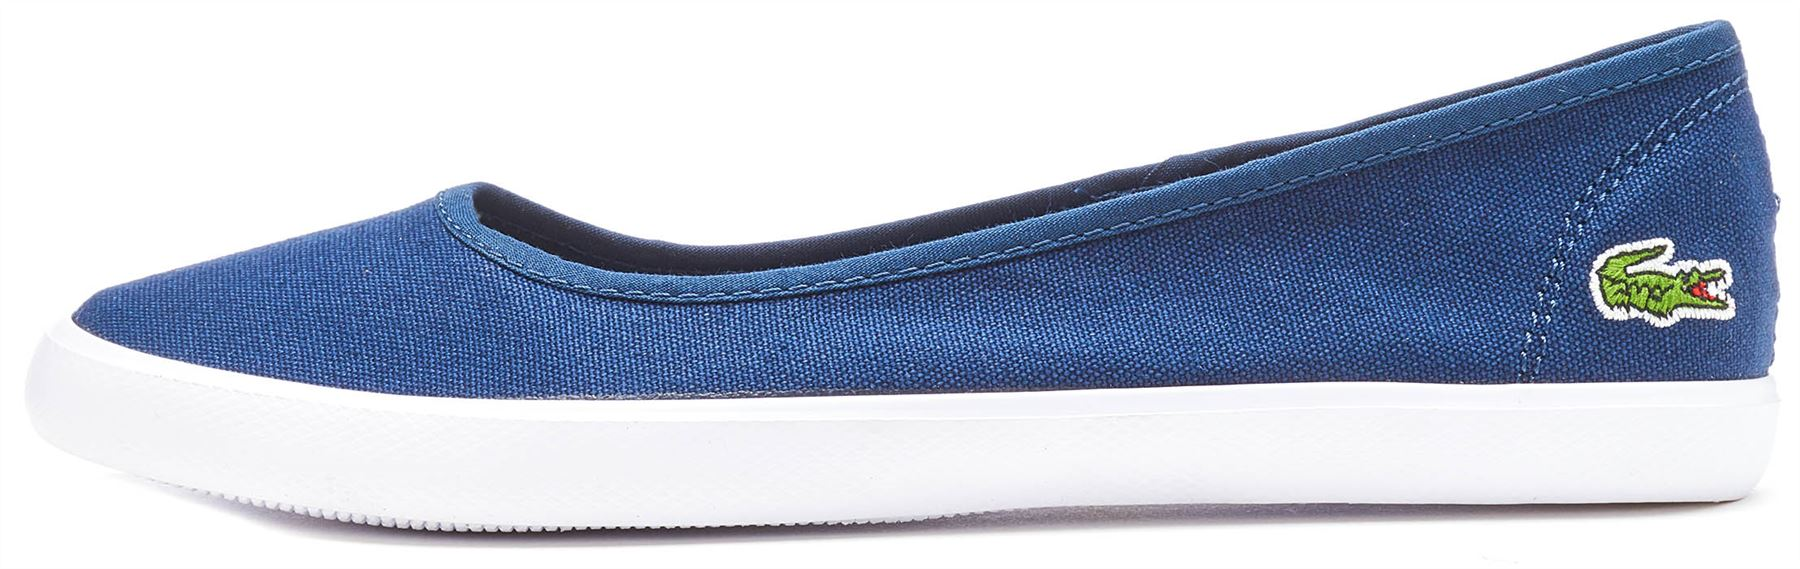 3e46aeae31bc9 Lacoste Women s Marthe BL 1 Canvas Slip on Ballet Flat Navy UK 4. About  this product. Picture 1 of 5  Picture 2 of 5 ...